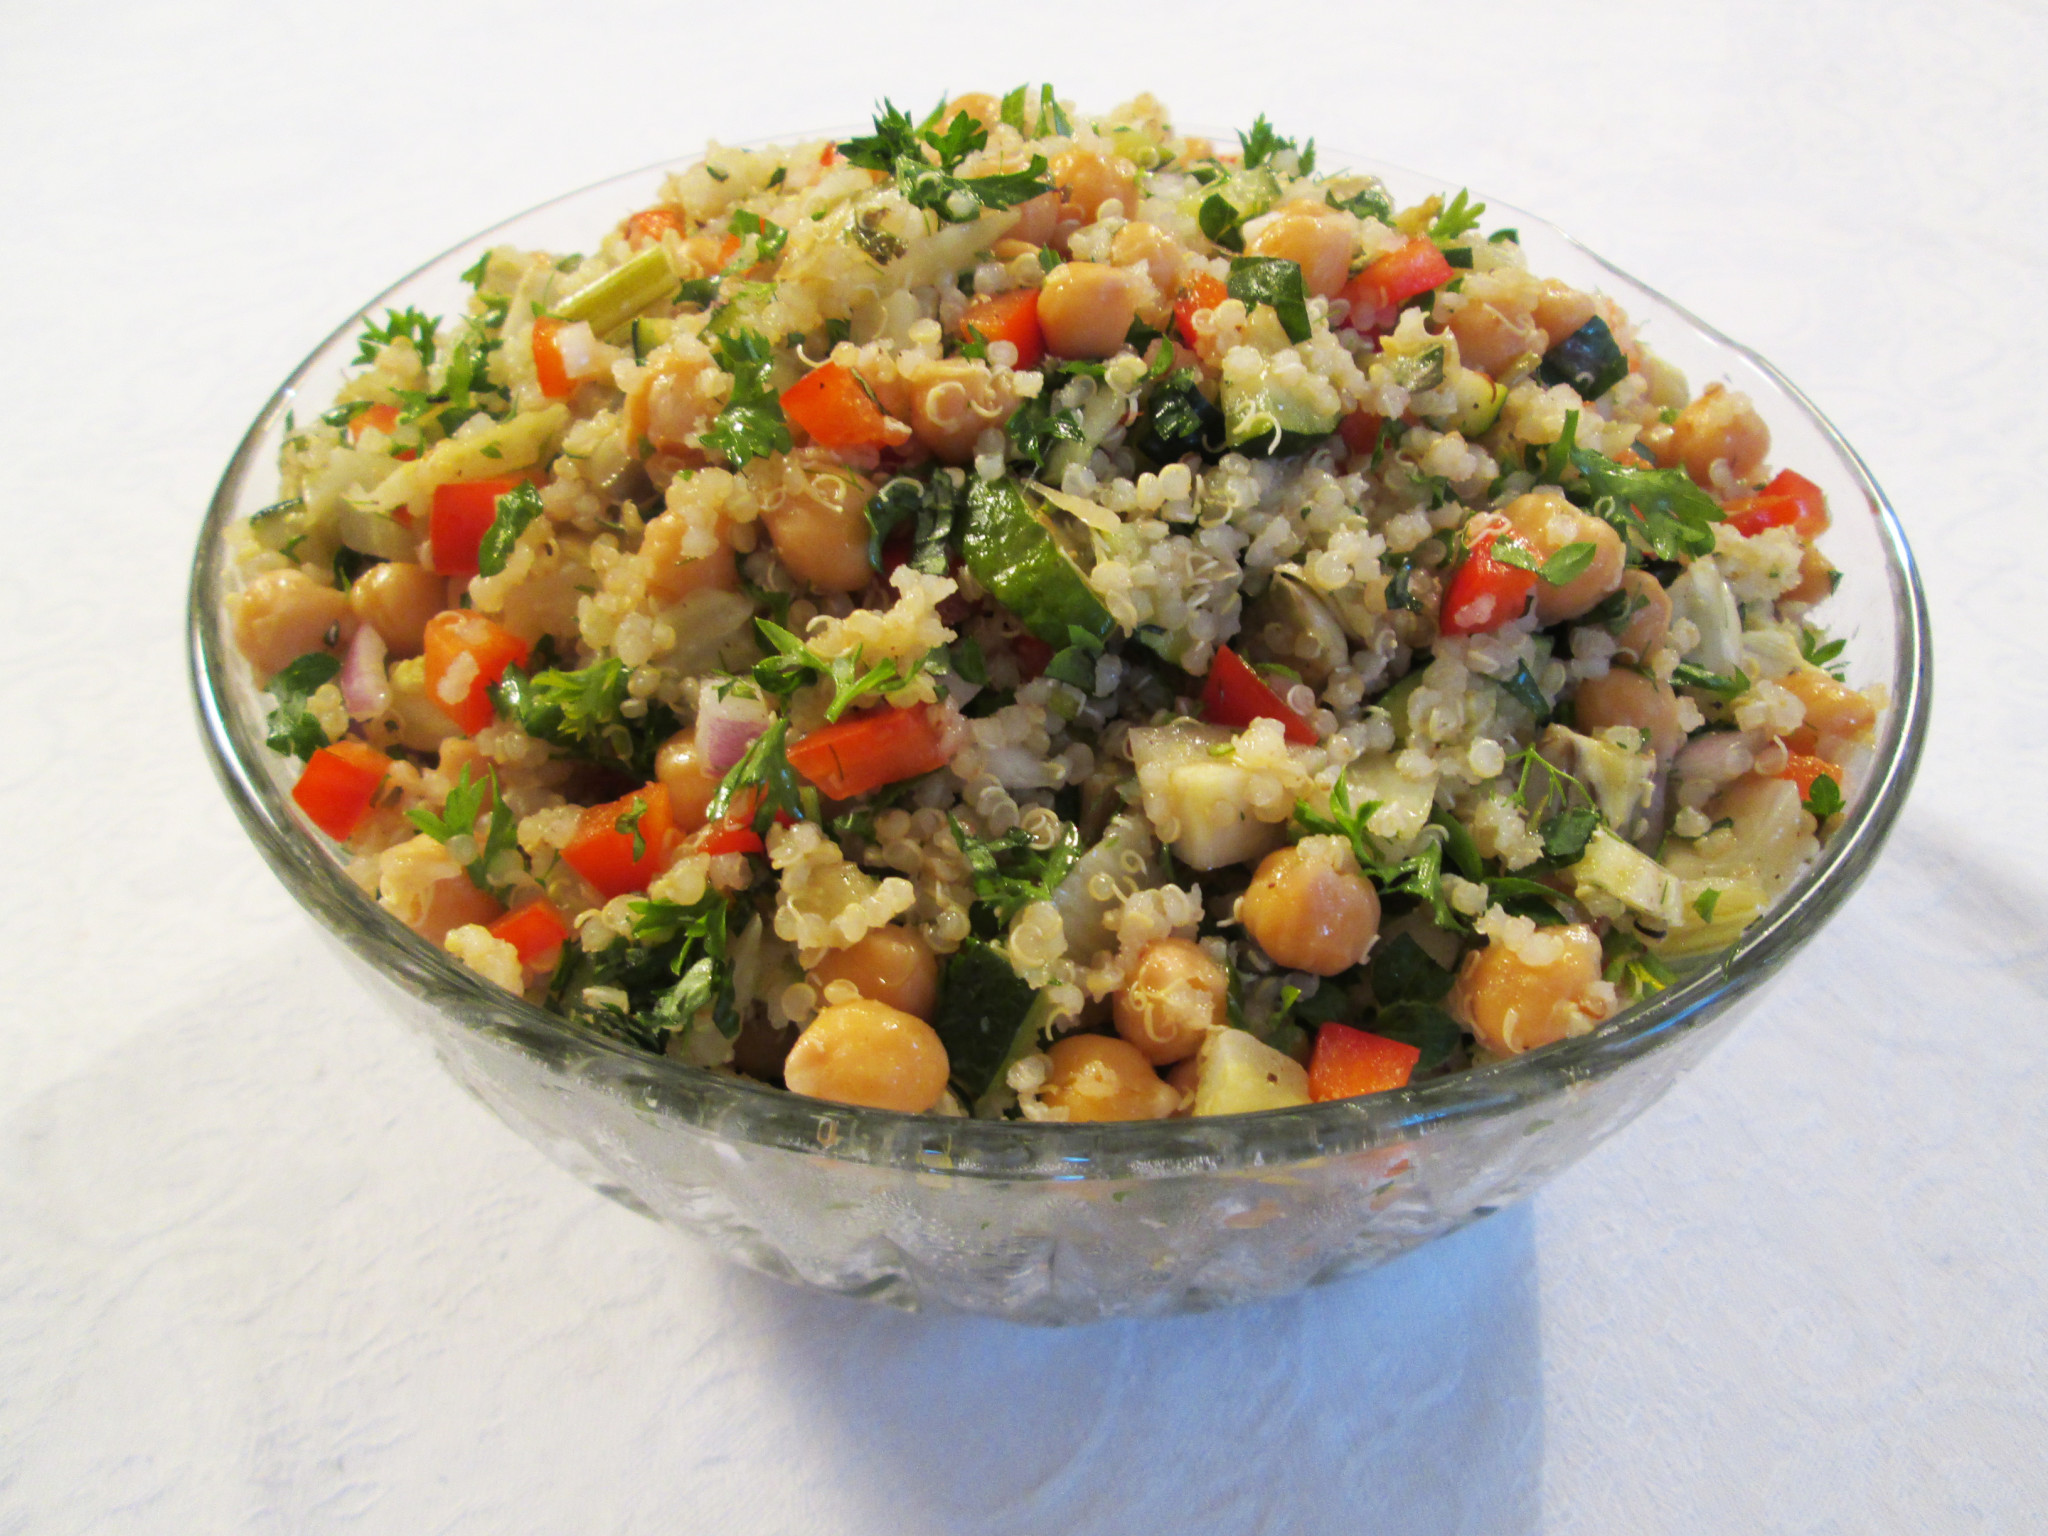 Roasted Vegetable Quinoa Salad  Chickpea Quinoa Salad with Roasted Ve ables Recipe